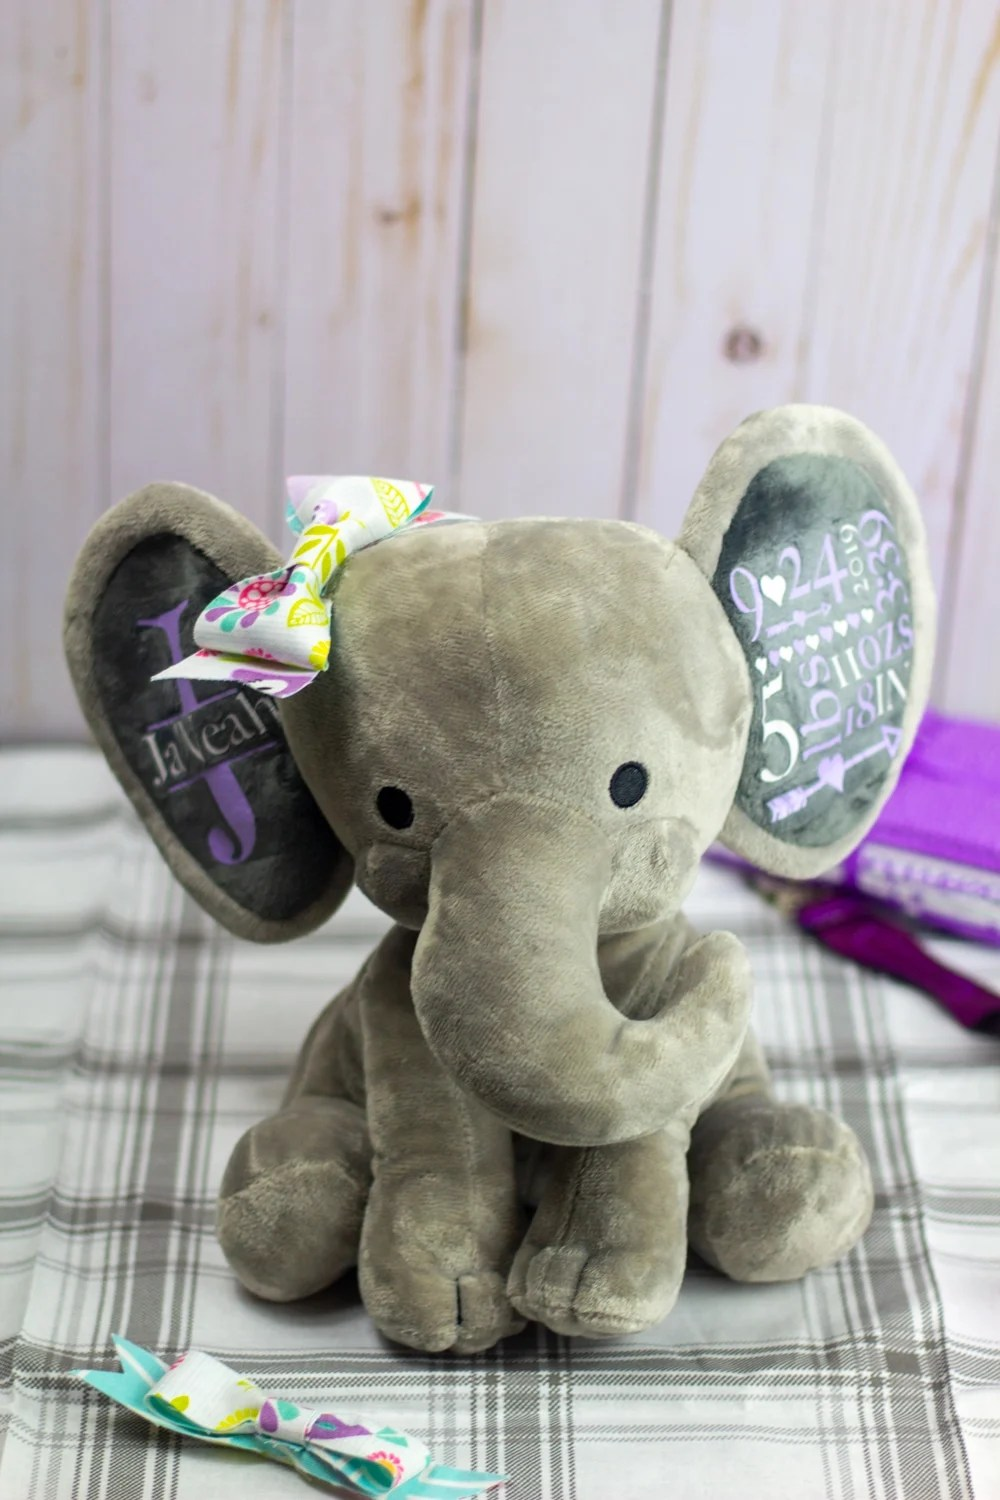 personalized stuffed animal gray elephant with fabric bow and purple and white text on the ears